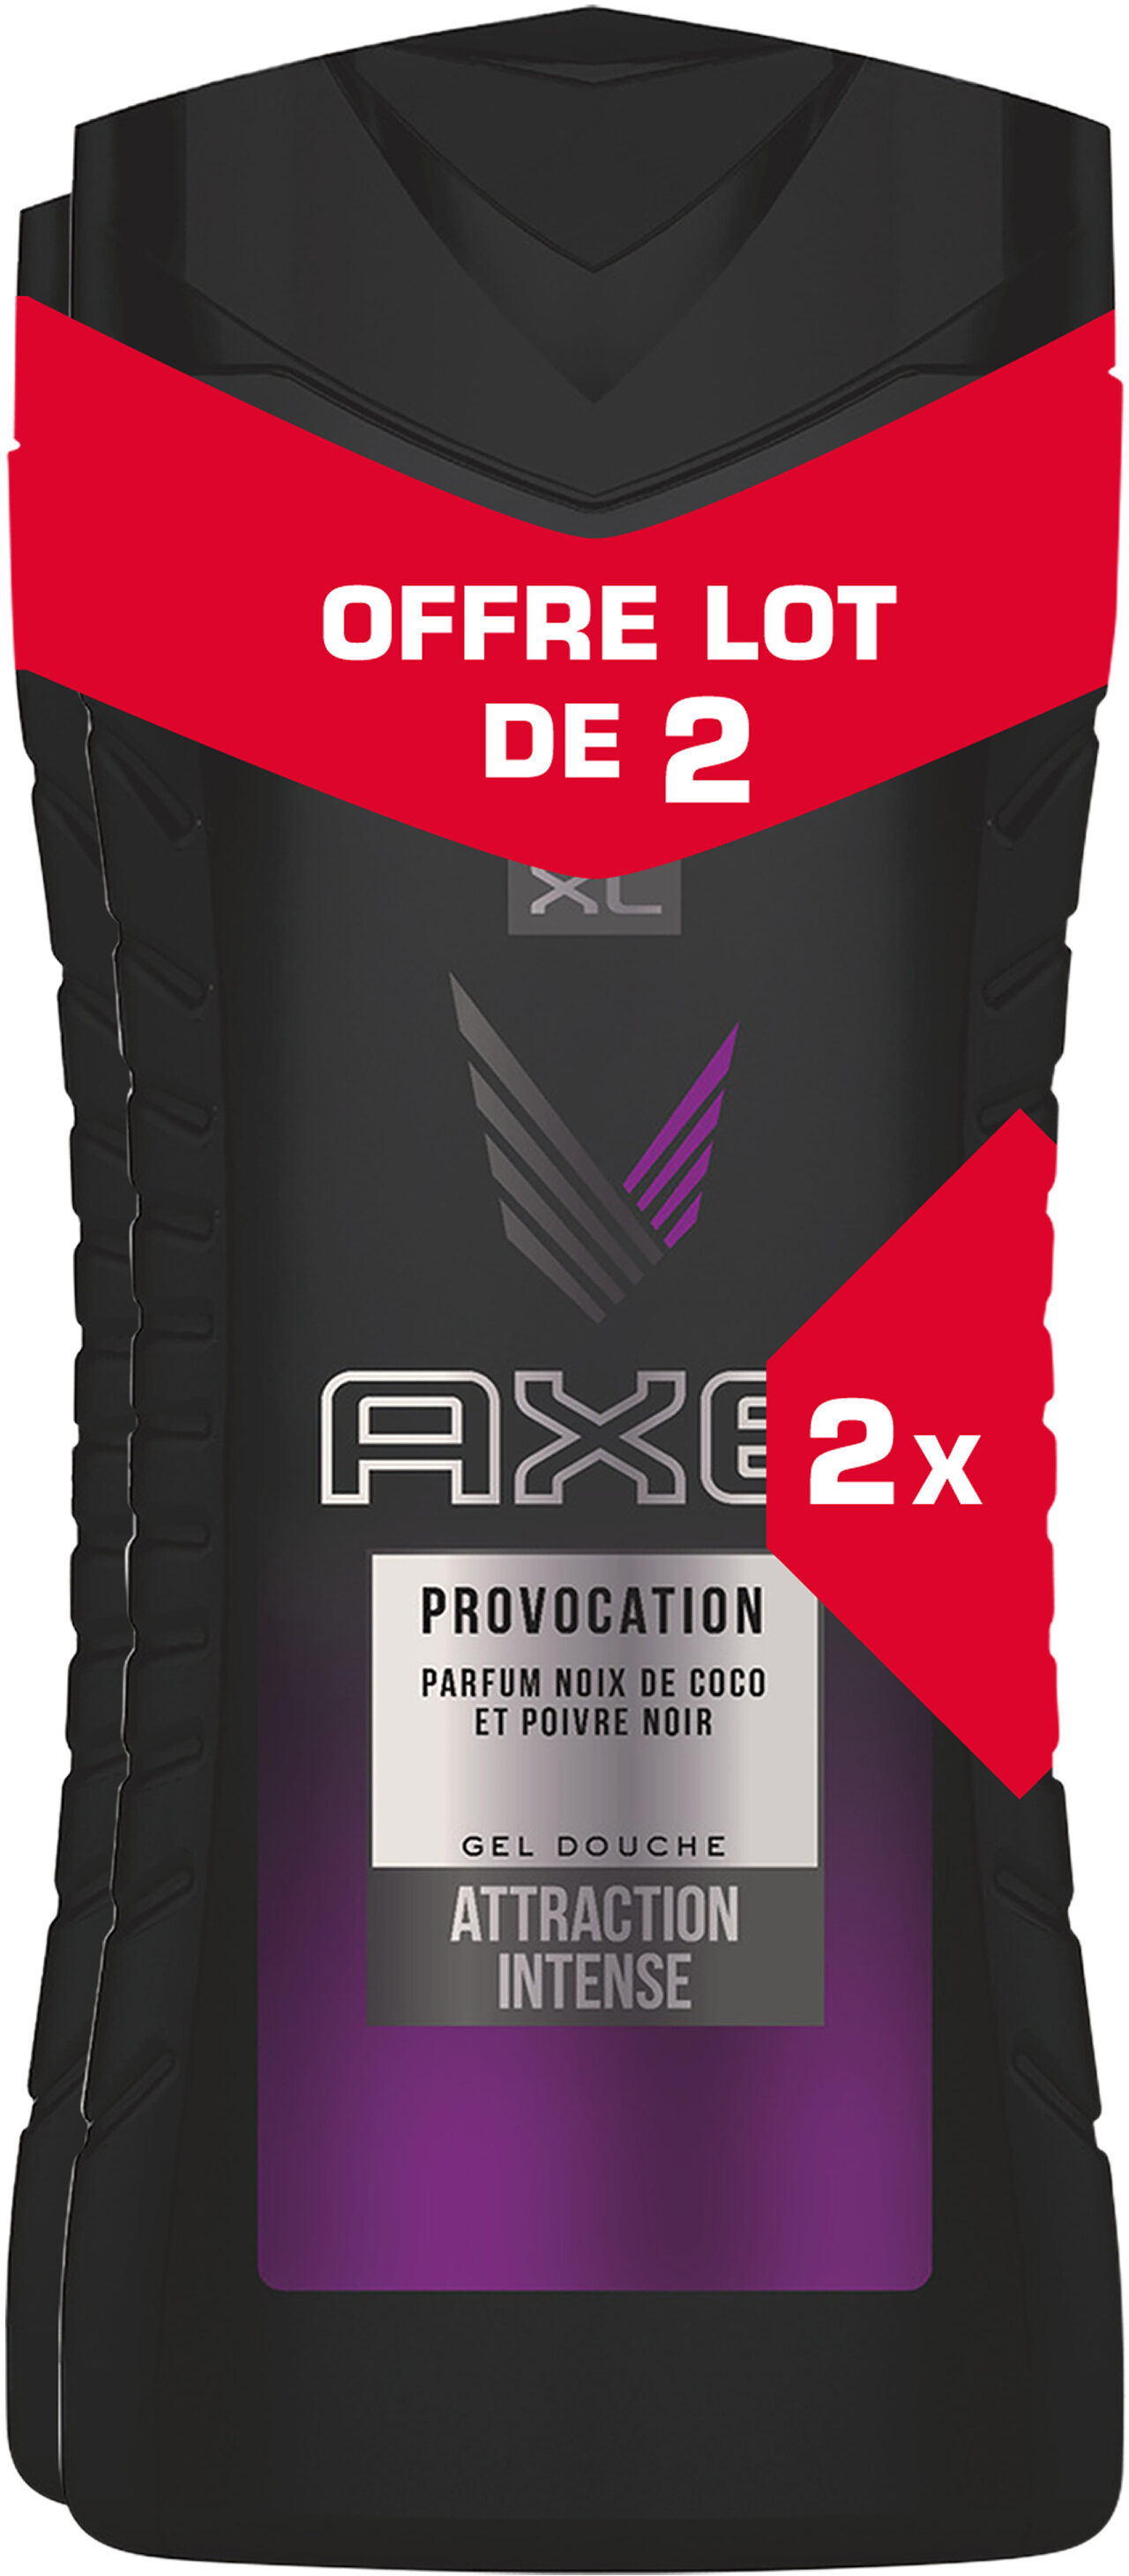 AXE Gel Douche Provocation Lot 2x400ml - Product - fr